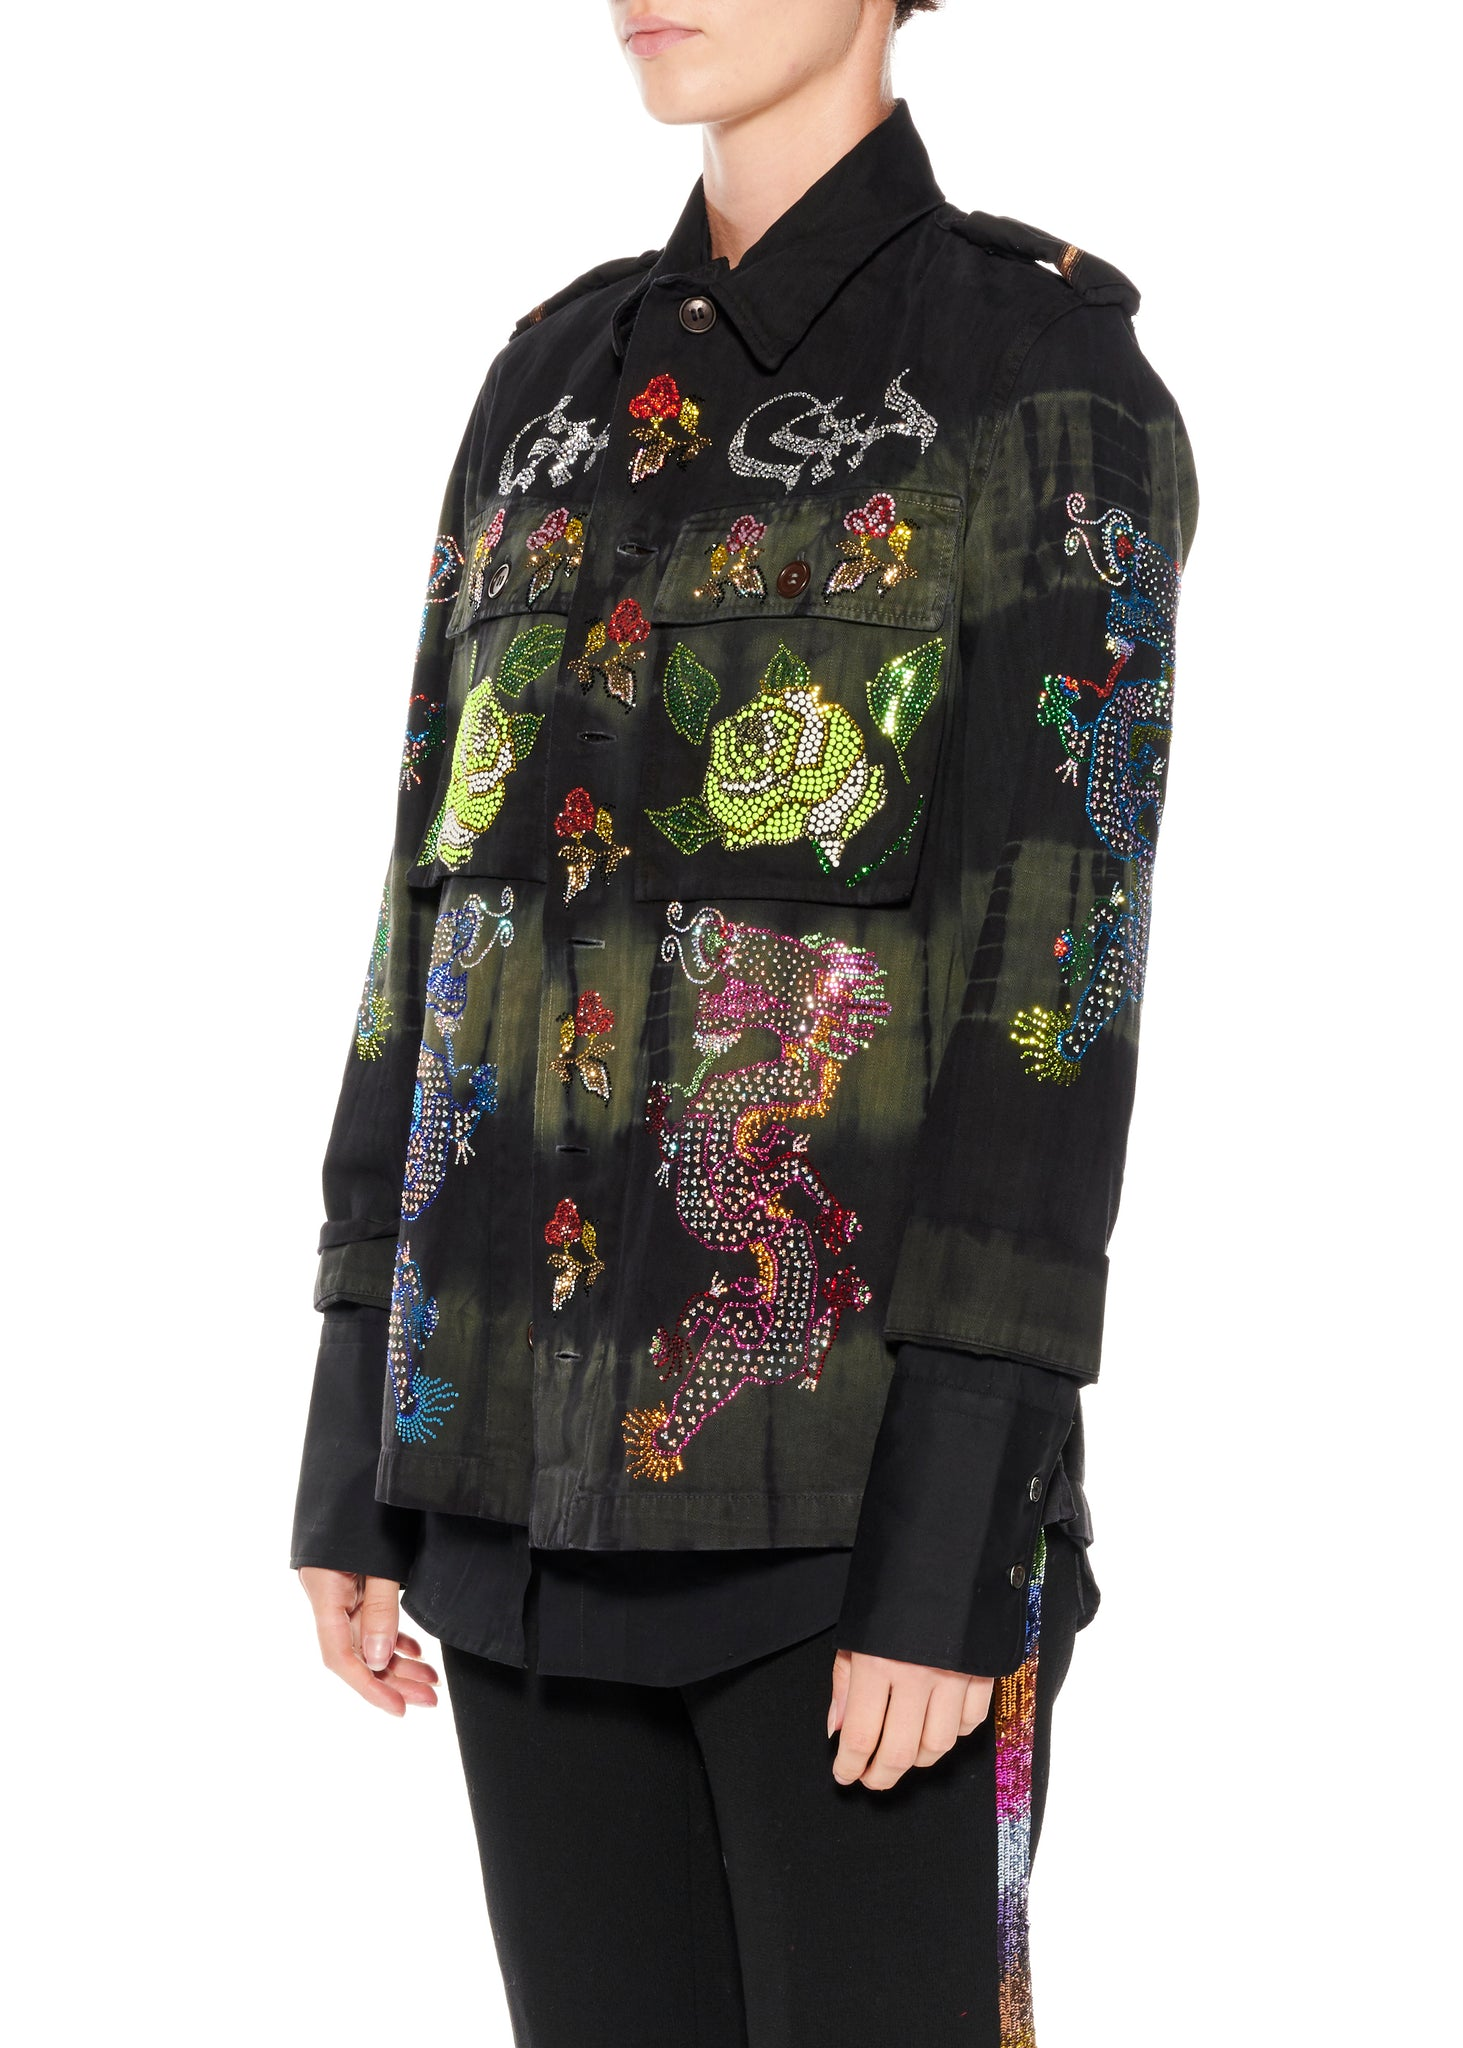 """MAGICAL MING DRAGON"" VINTAGE FRENCH MILITARY JACKET - Women's Jackets & Coats - Libertine"